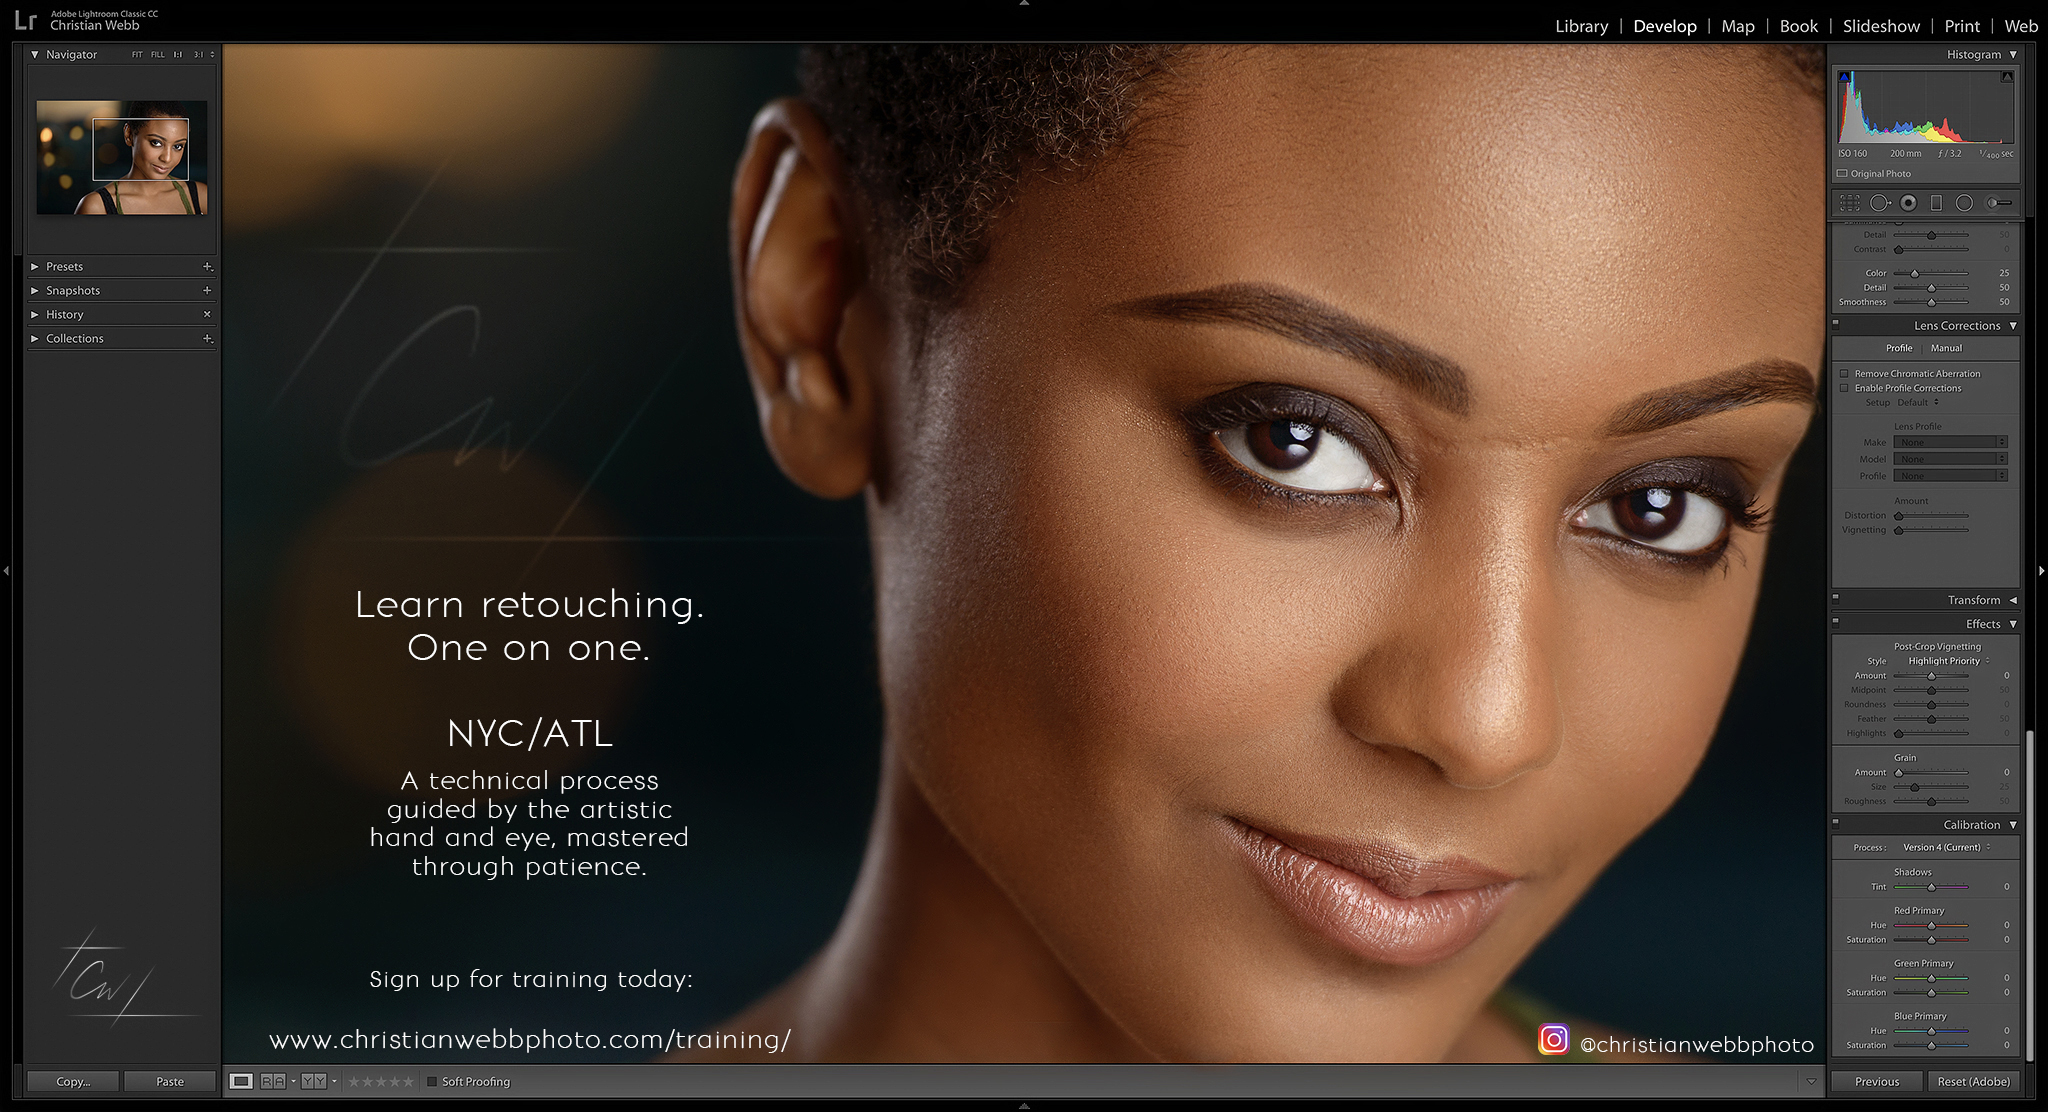 Christian Webb-Photography-Retouching-Photoshop Classes-Training-Adobe Training-NY-ATL.jpg